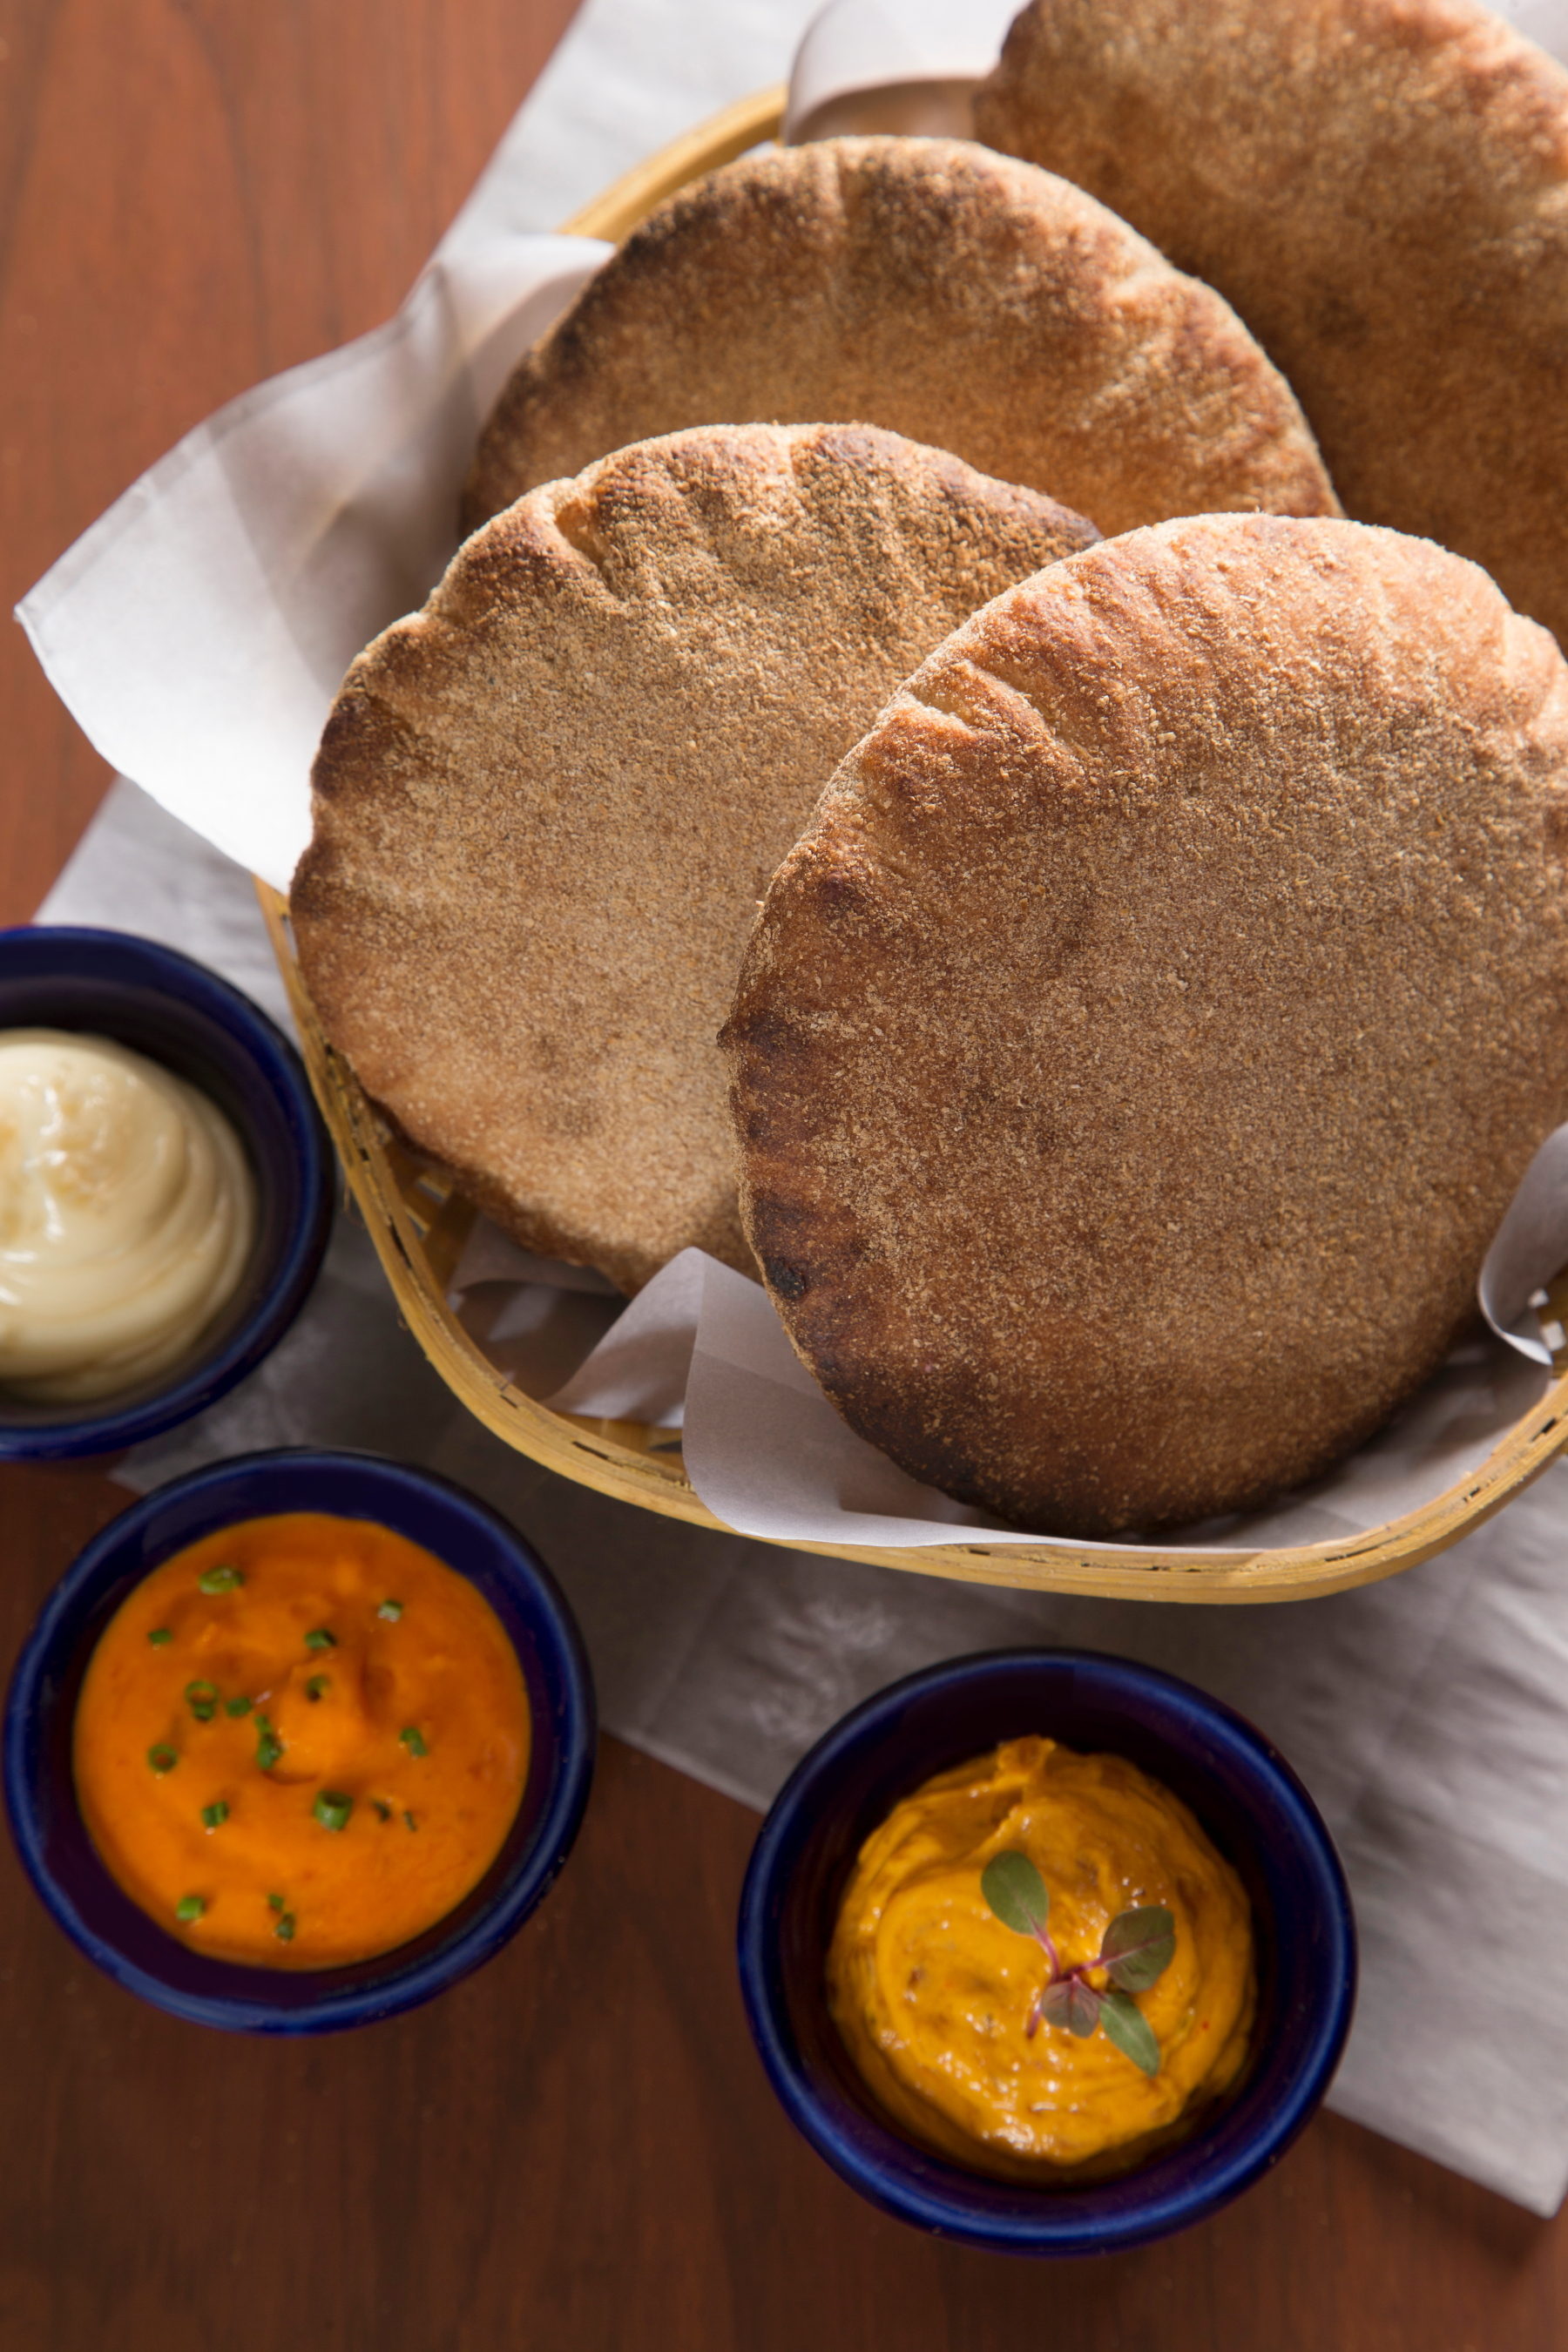 House Baked Sourdough Poee with Assorted Butters_O Pedro_pic sanjay ramchandran.JPG